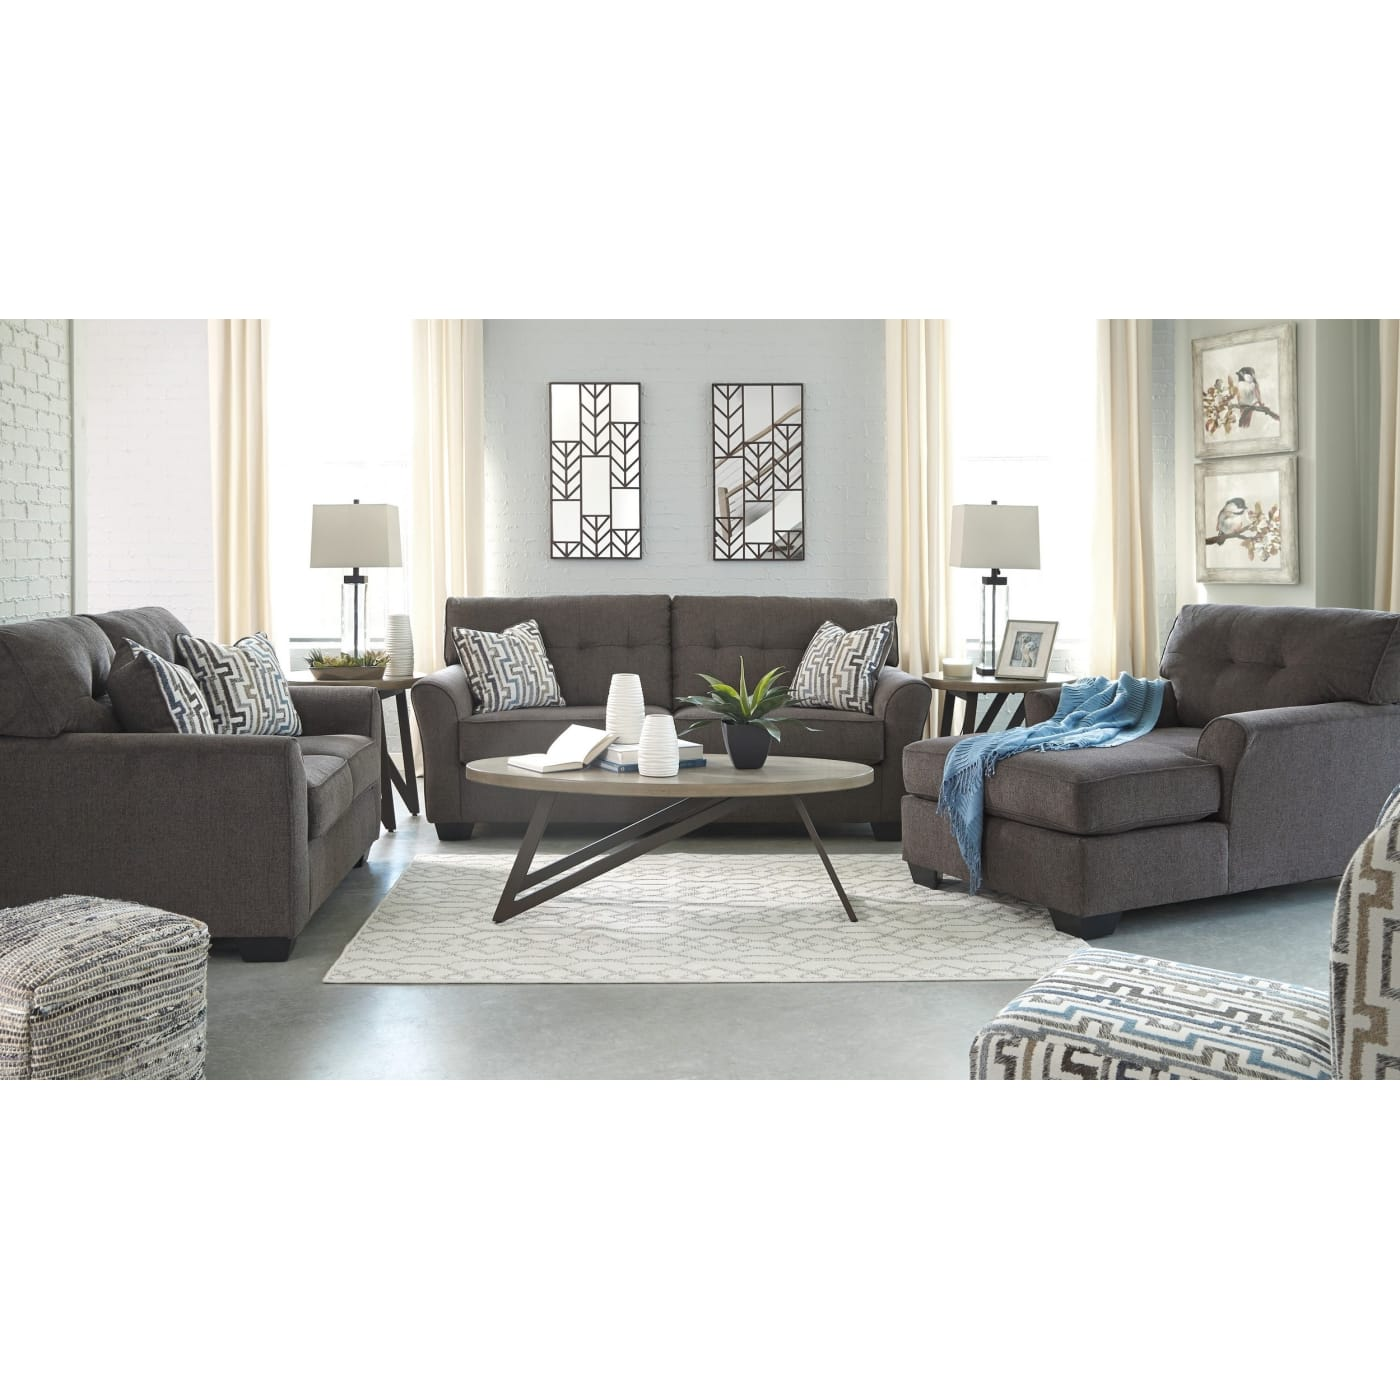 Alsen Granite 4 Piece Living Room Set